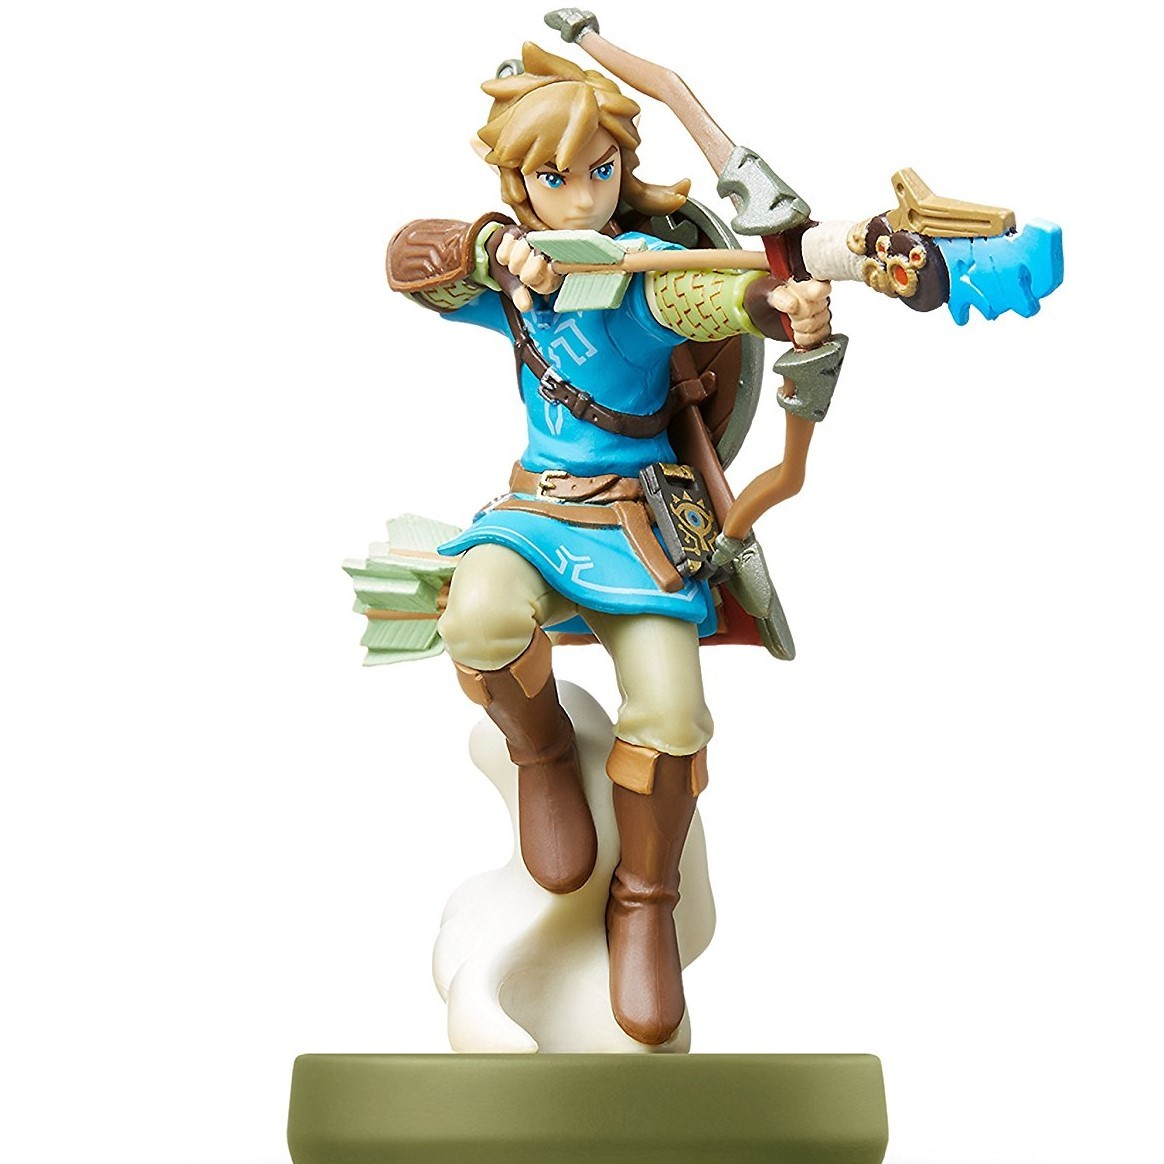 bon plan amiibos zelda breath of the wild pas cher wii u. Black Bedroom Furniture Sets. Home Design Ideas